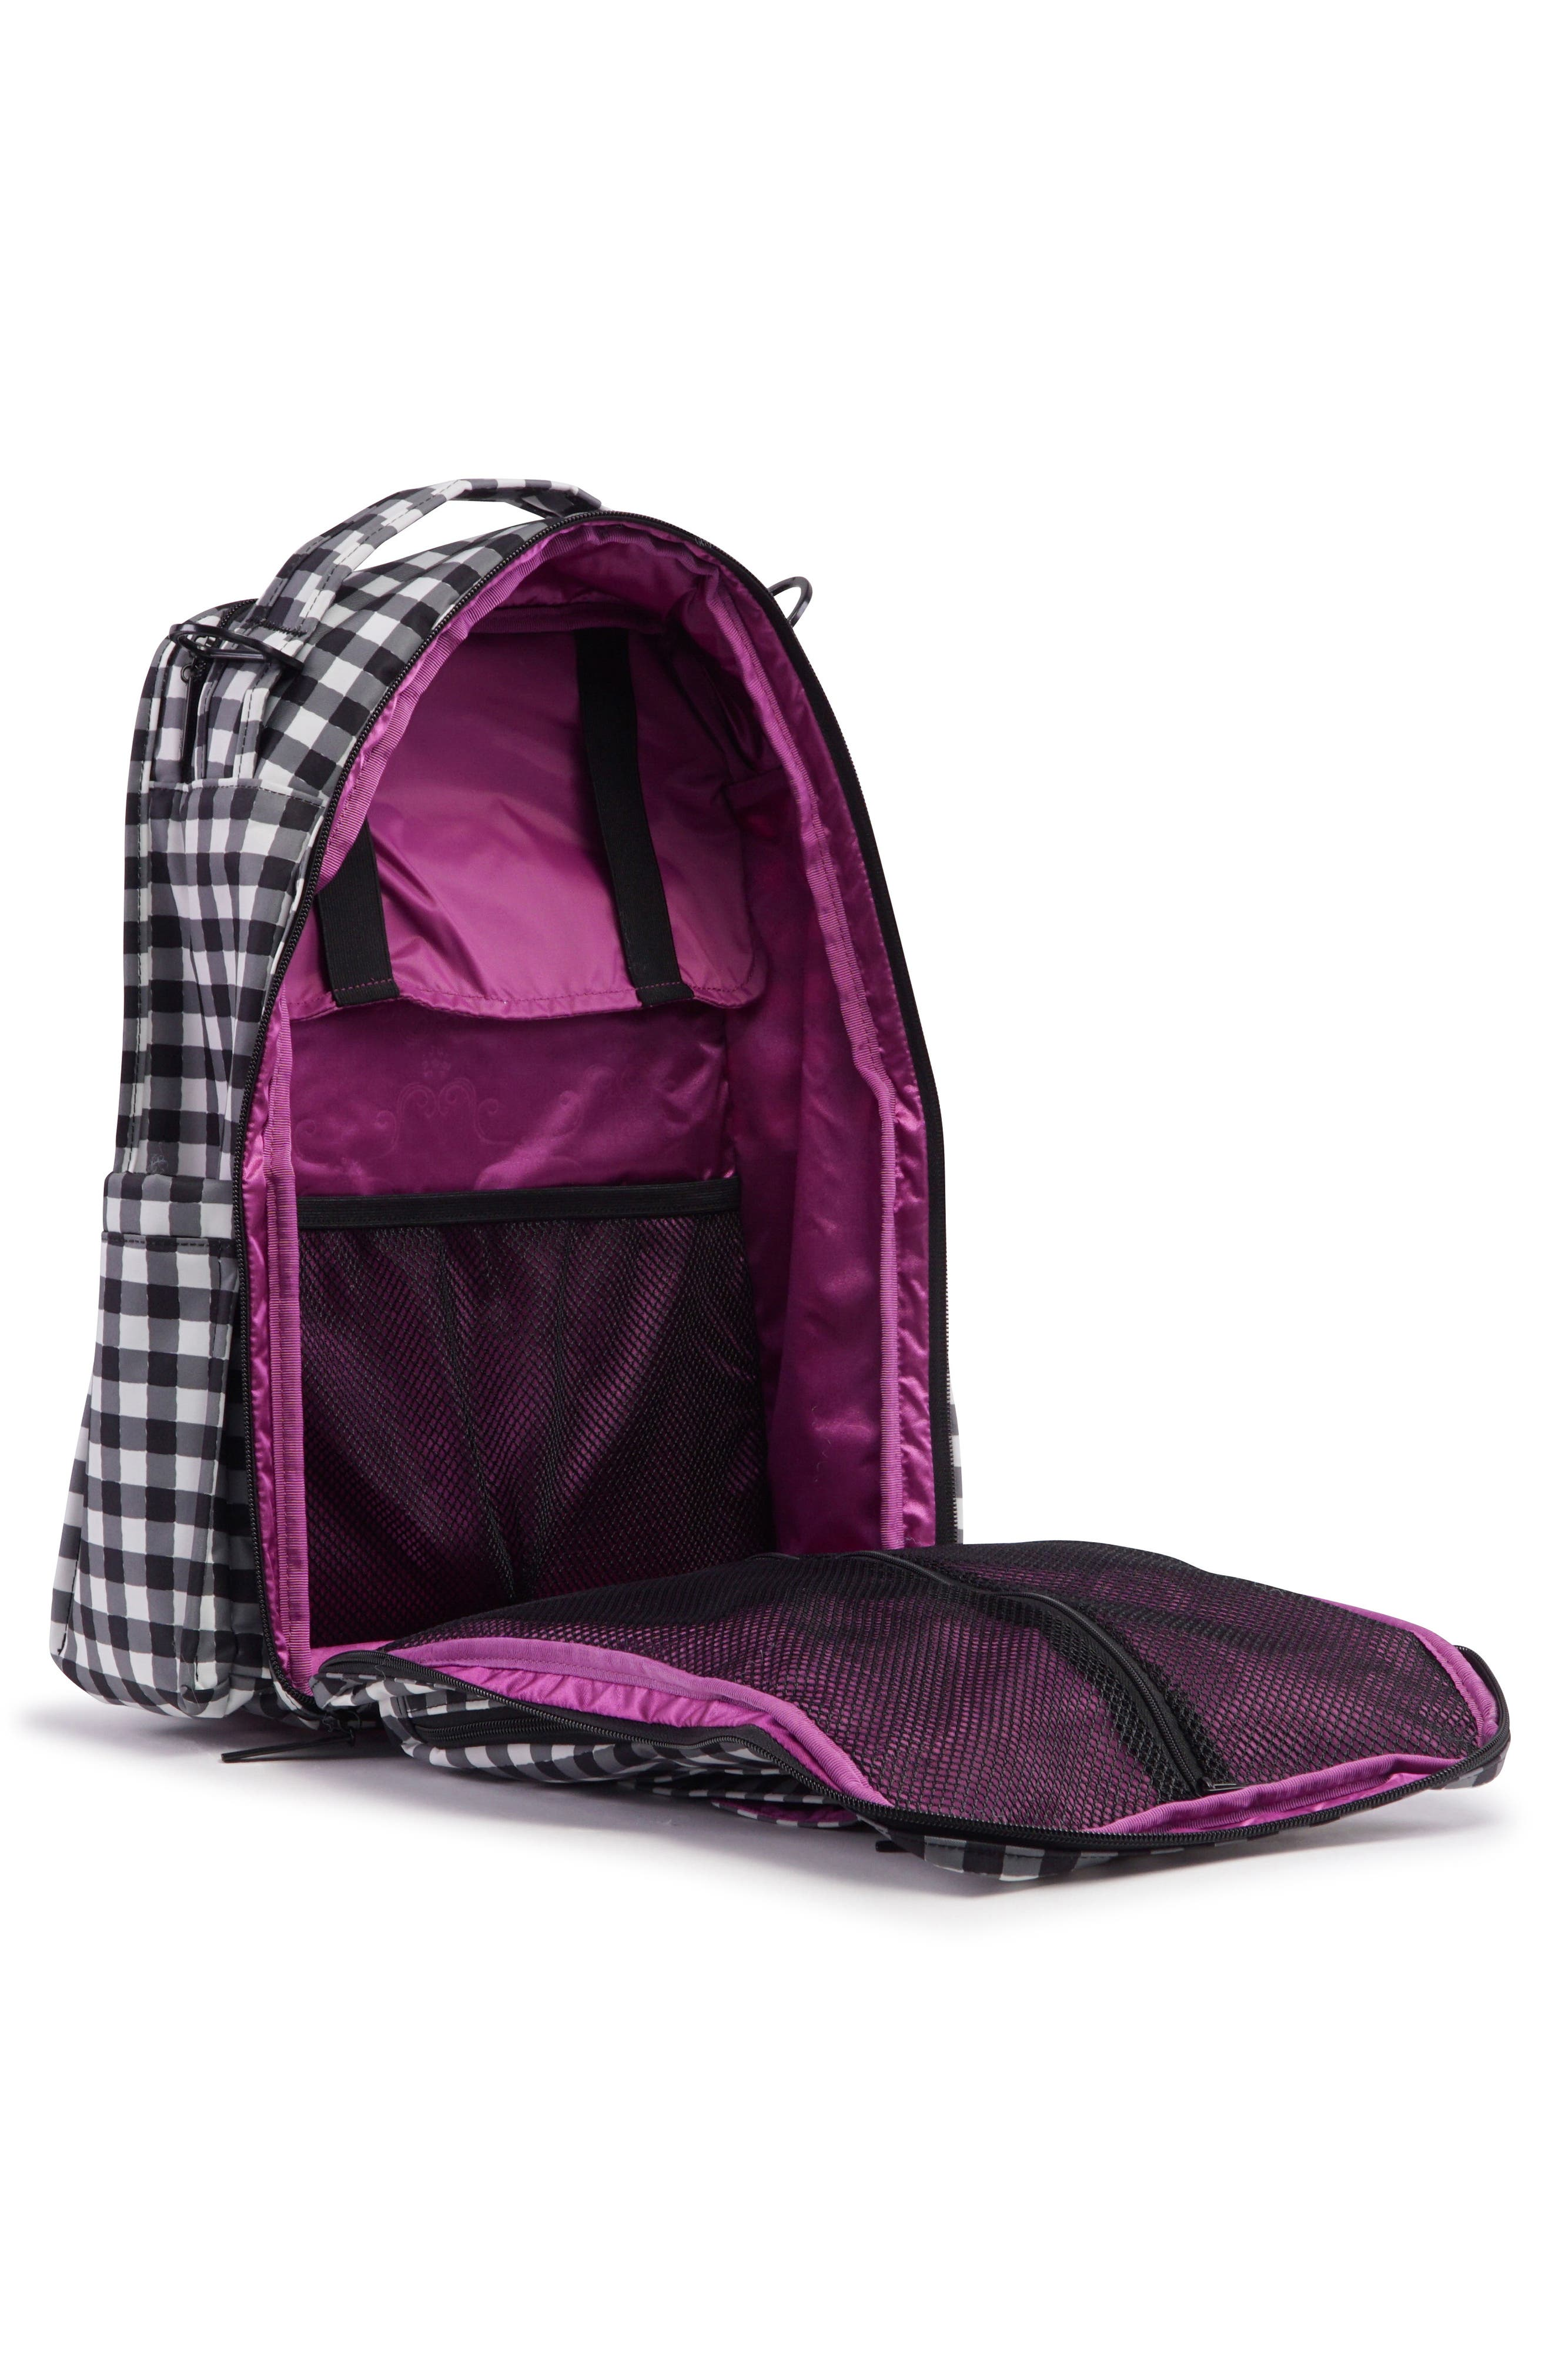 'Be Right Back - Onyx Collection' Diaper Backpack,                             Alternate thumbnail 4, color,                             Gingham Style